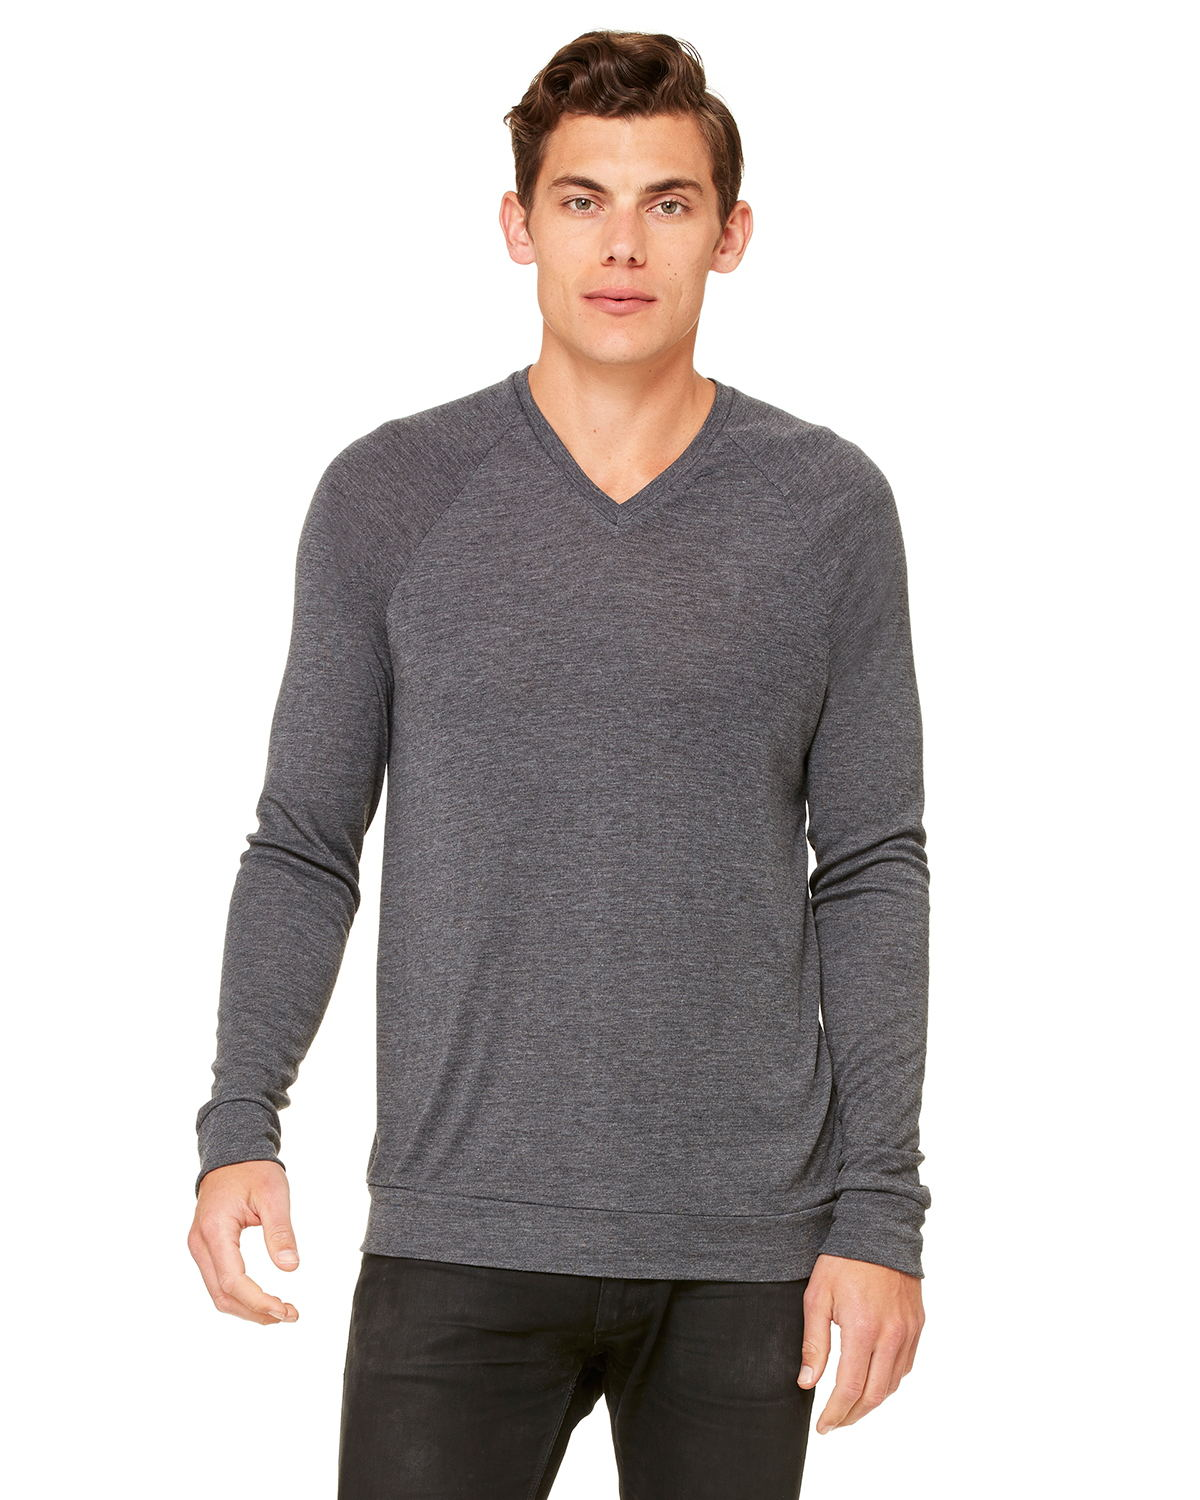 Canvas Unisex Pullover Raglan V-Neck Lightweight Sweater ...